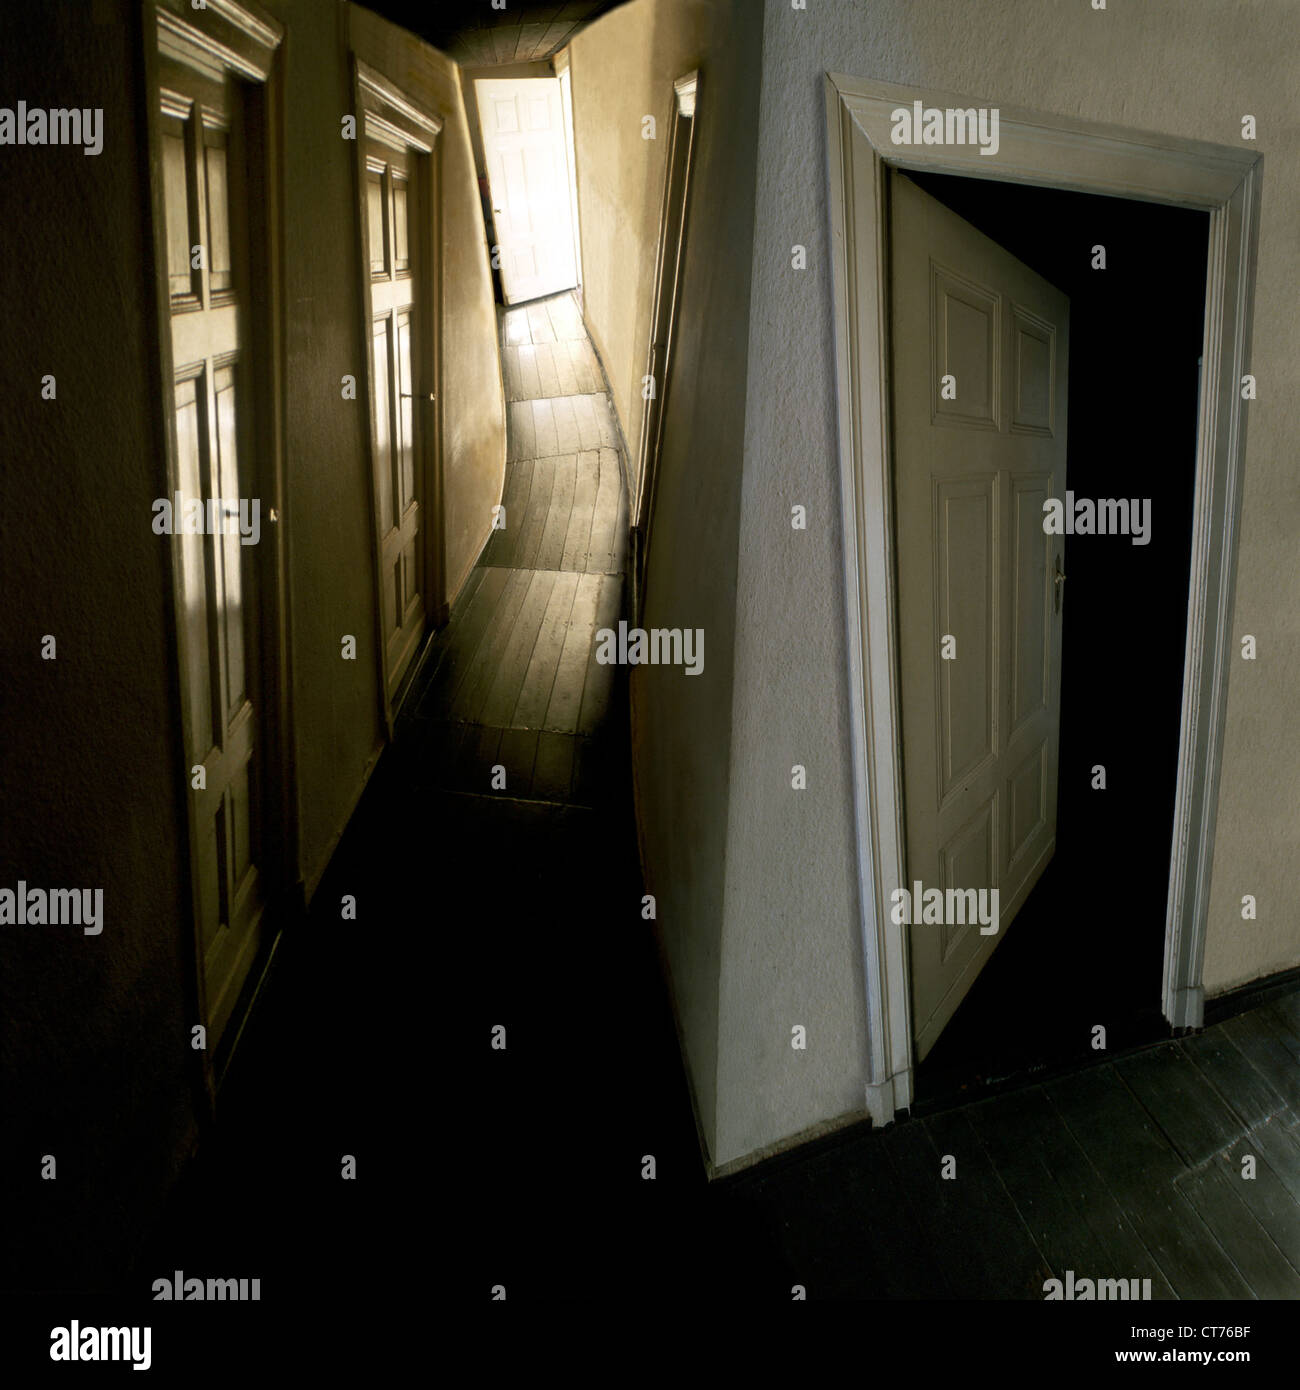 Open and closed doors in a hallway - Stock Image